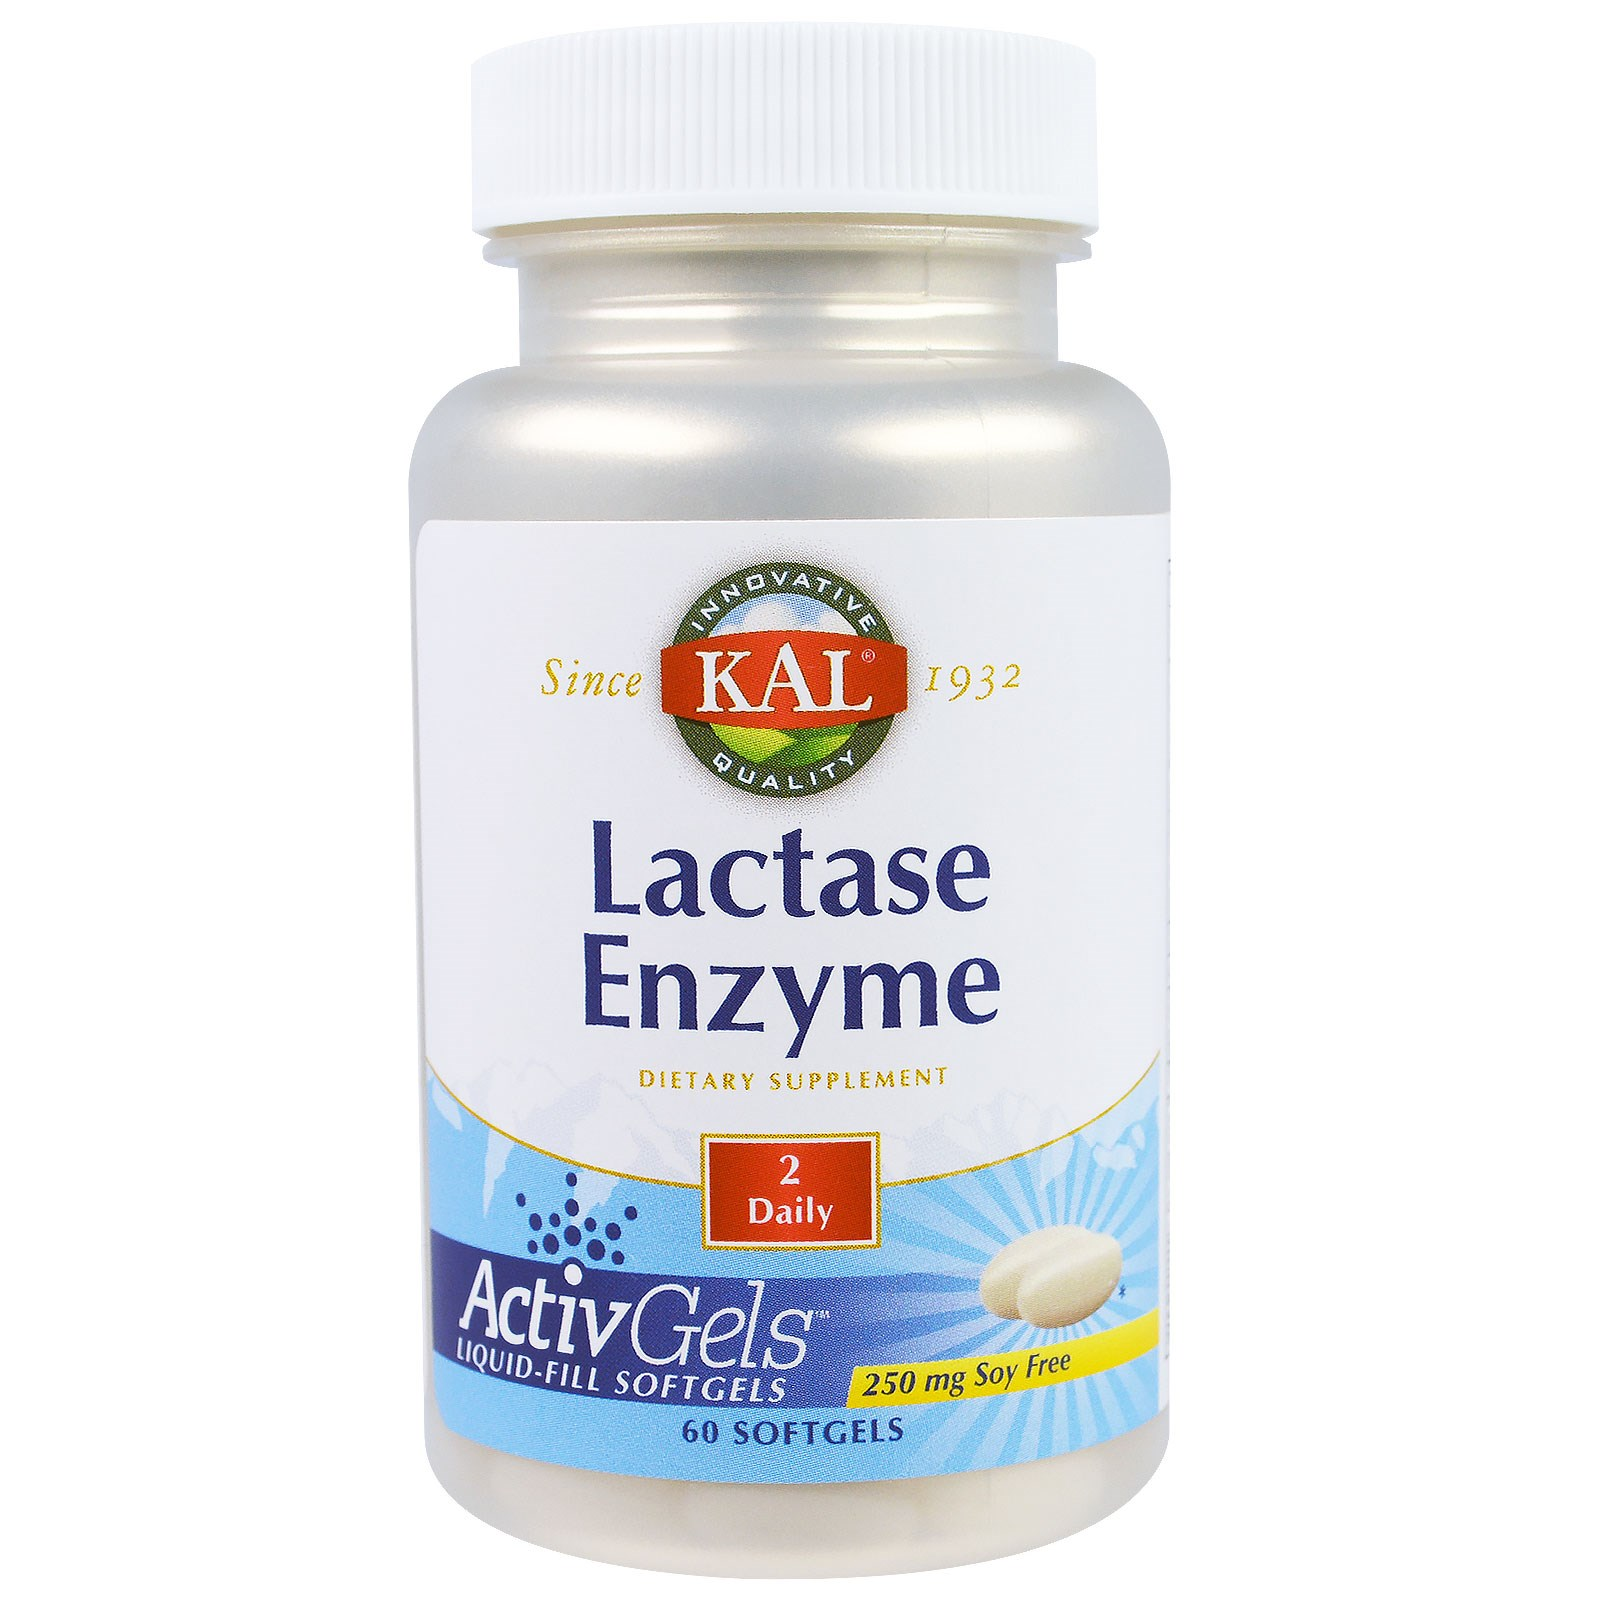 lactase Most of us are familiar with lactose (milk sugar), but what is lactaseafter weaning, our bodies naturally decrease the production of lactase, the enzyme that breaks down lactose in our intestines.